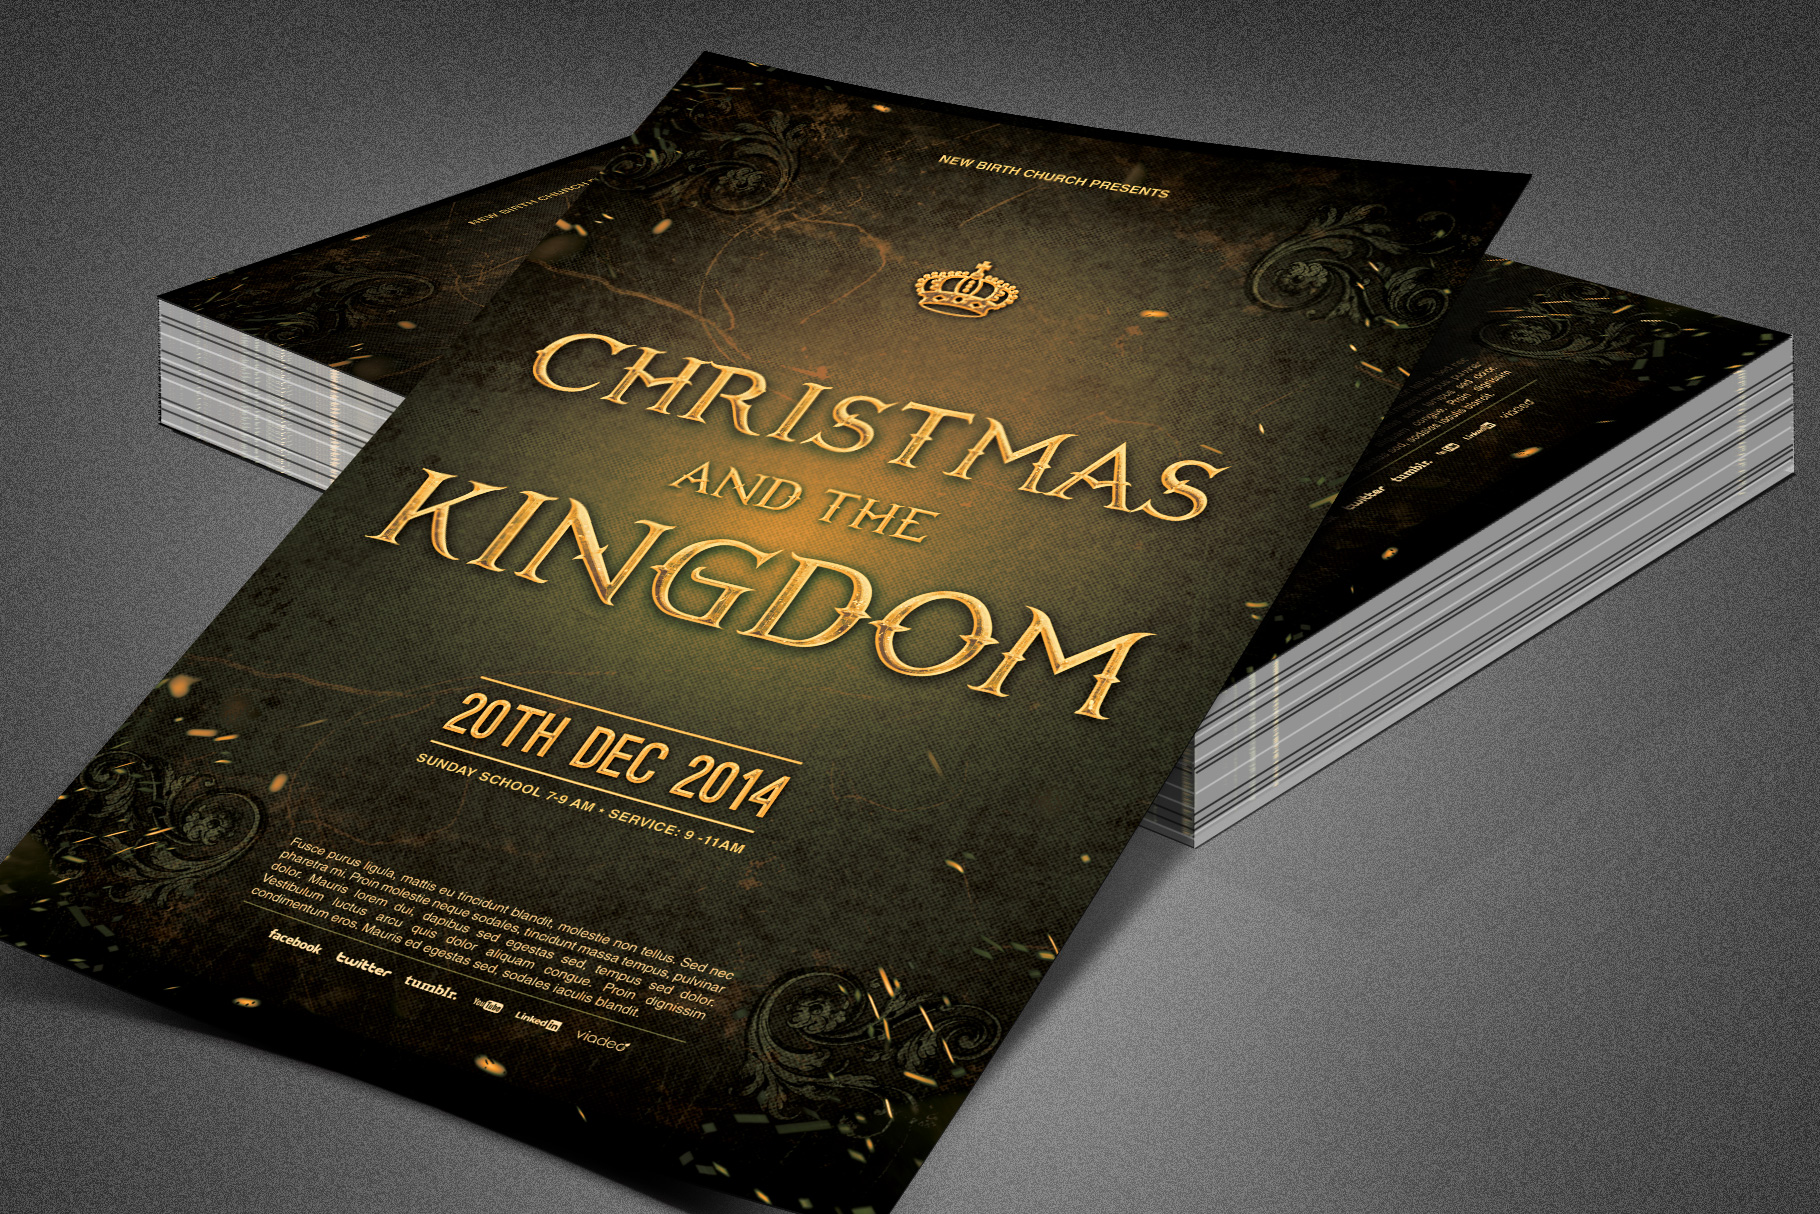 Christmas and the Kingdom Flyer example image 4